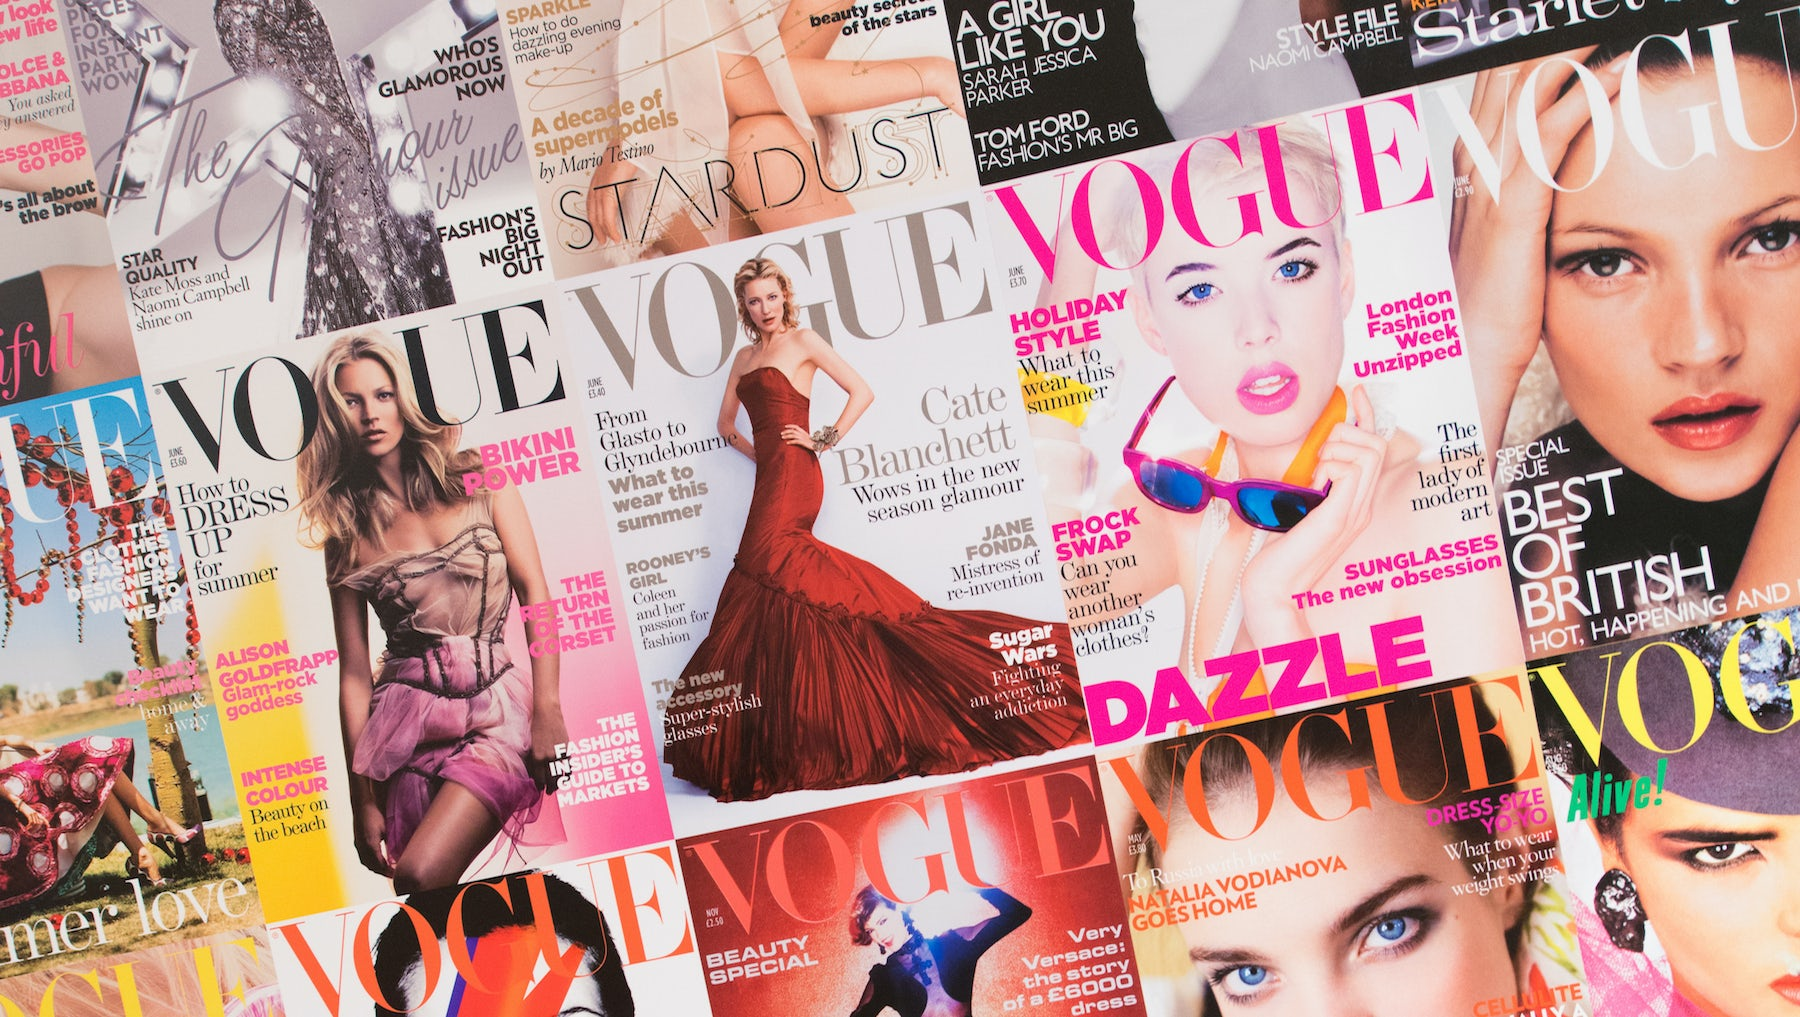 Covers of Vogue Magazine | Source: Shutterstock